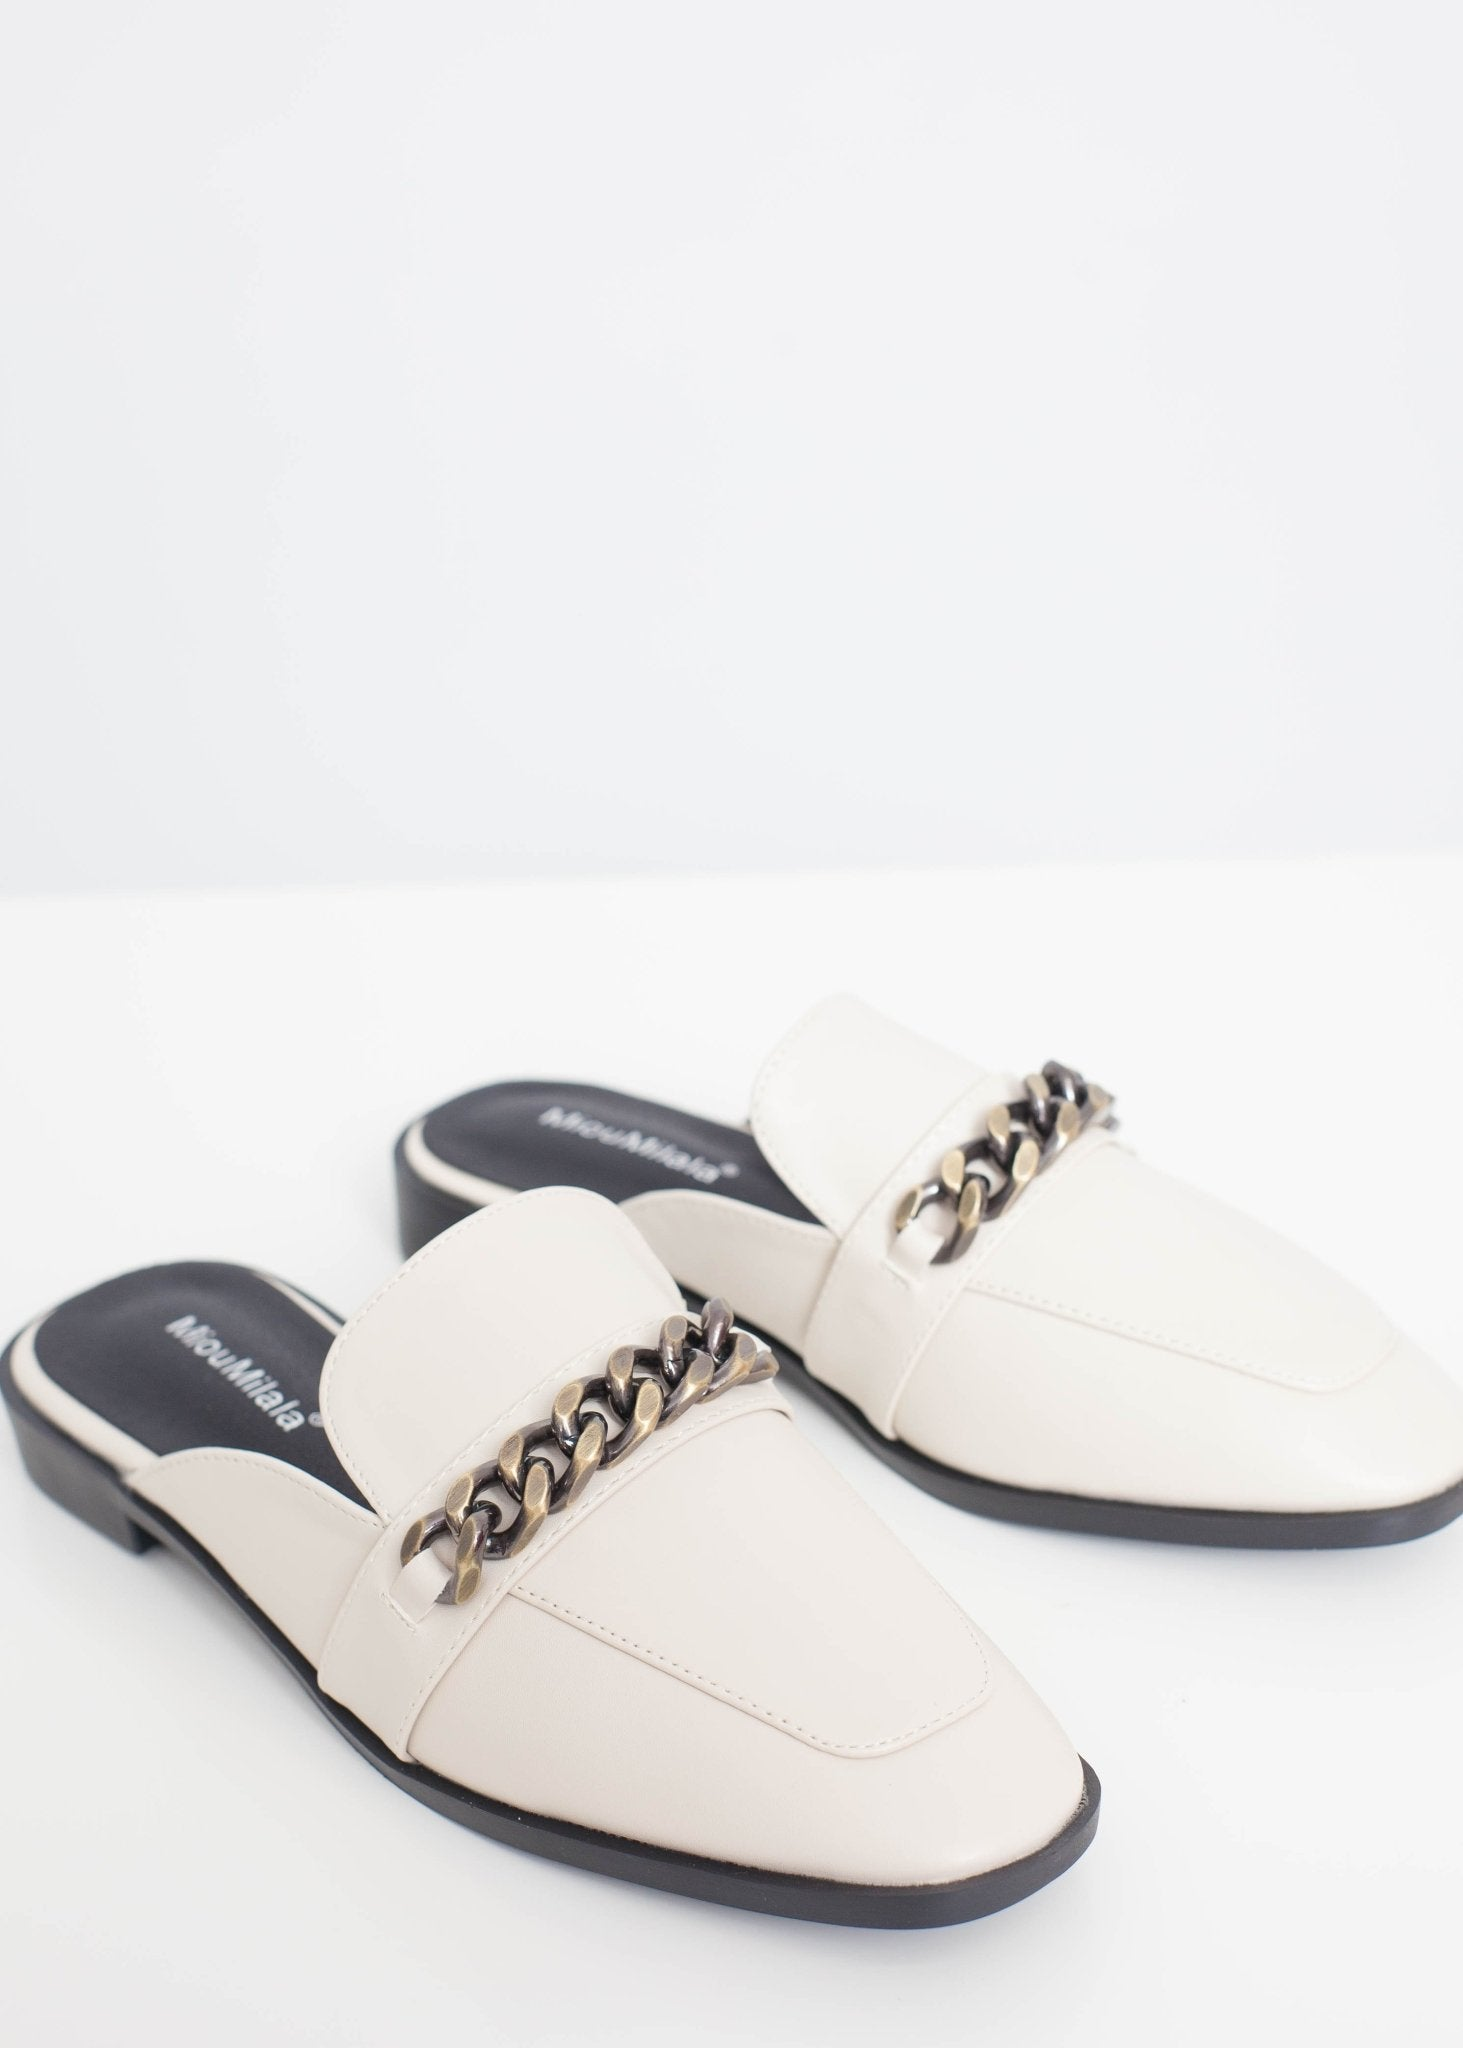 Blair Chain Link Mule In Cream - The Walk in Wardrobe